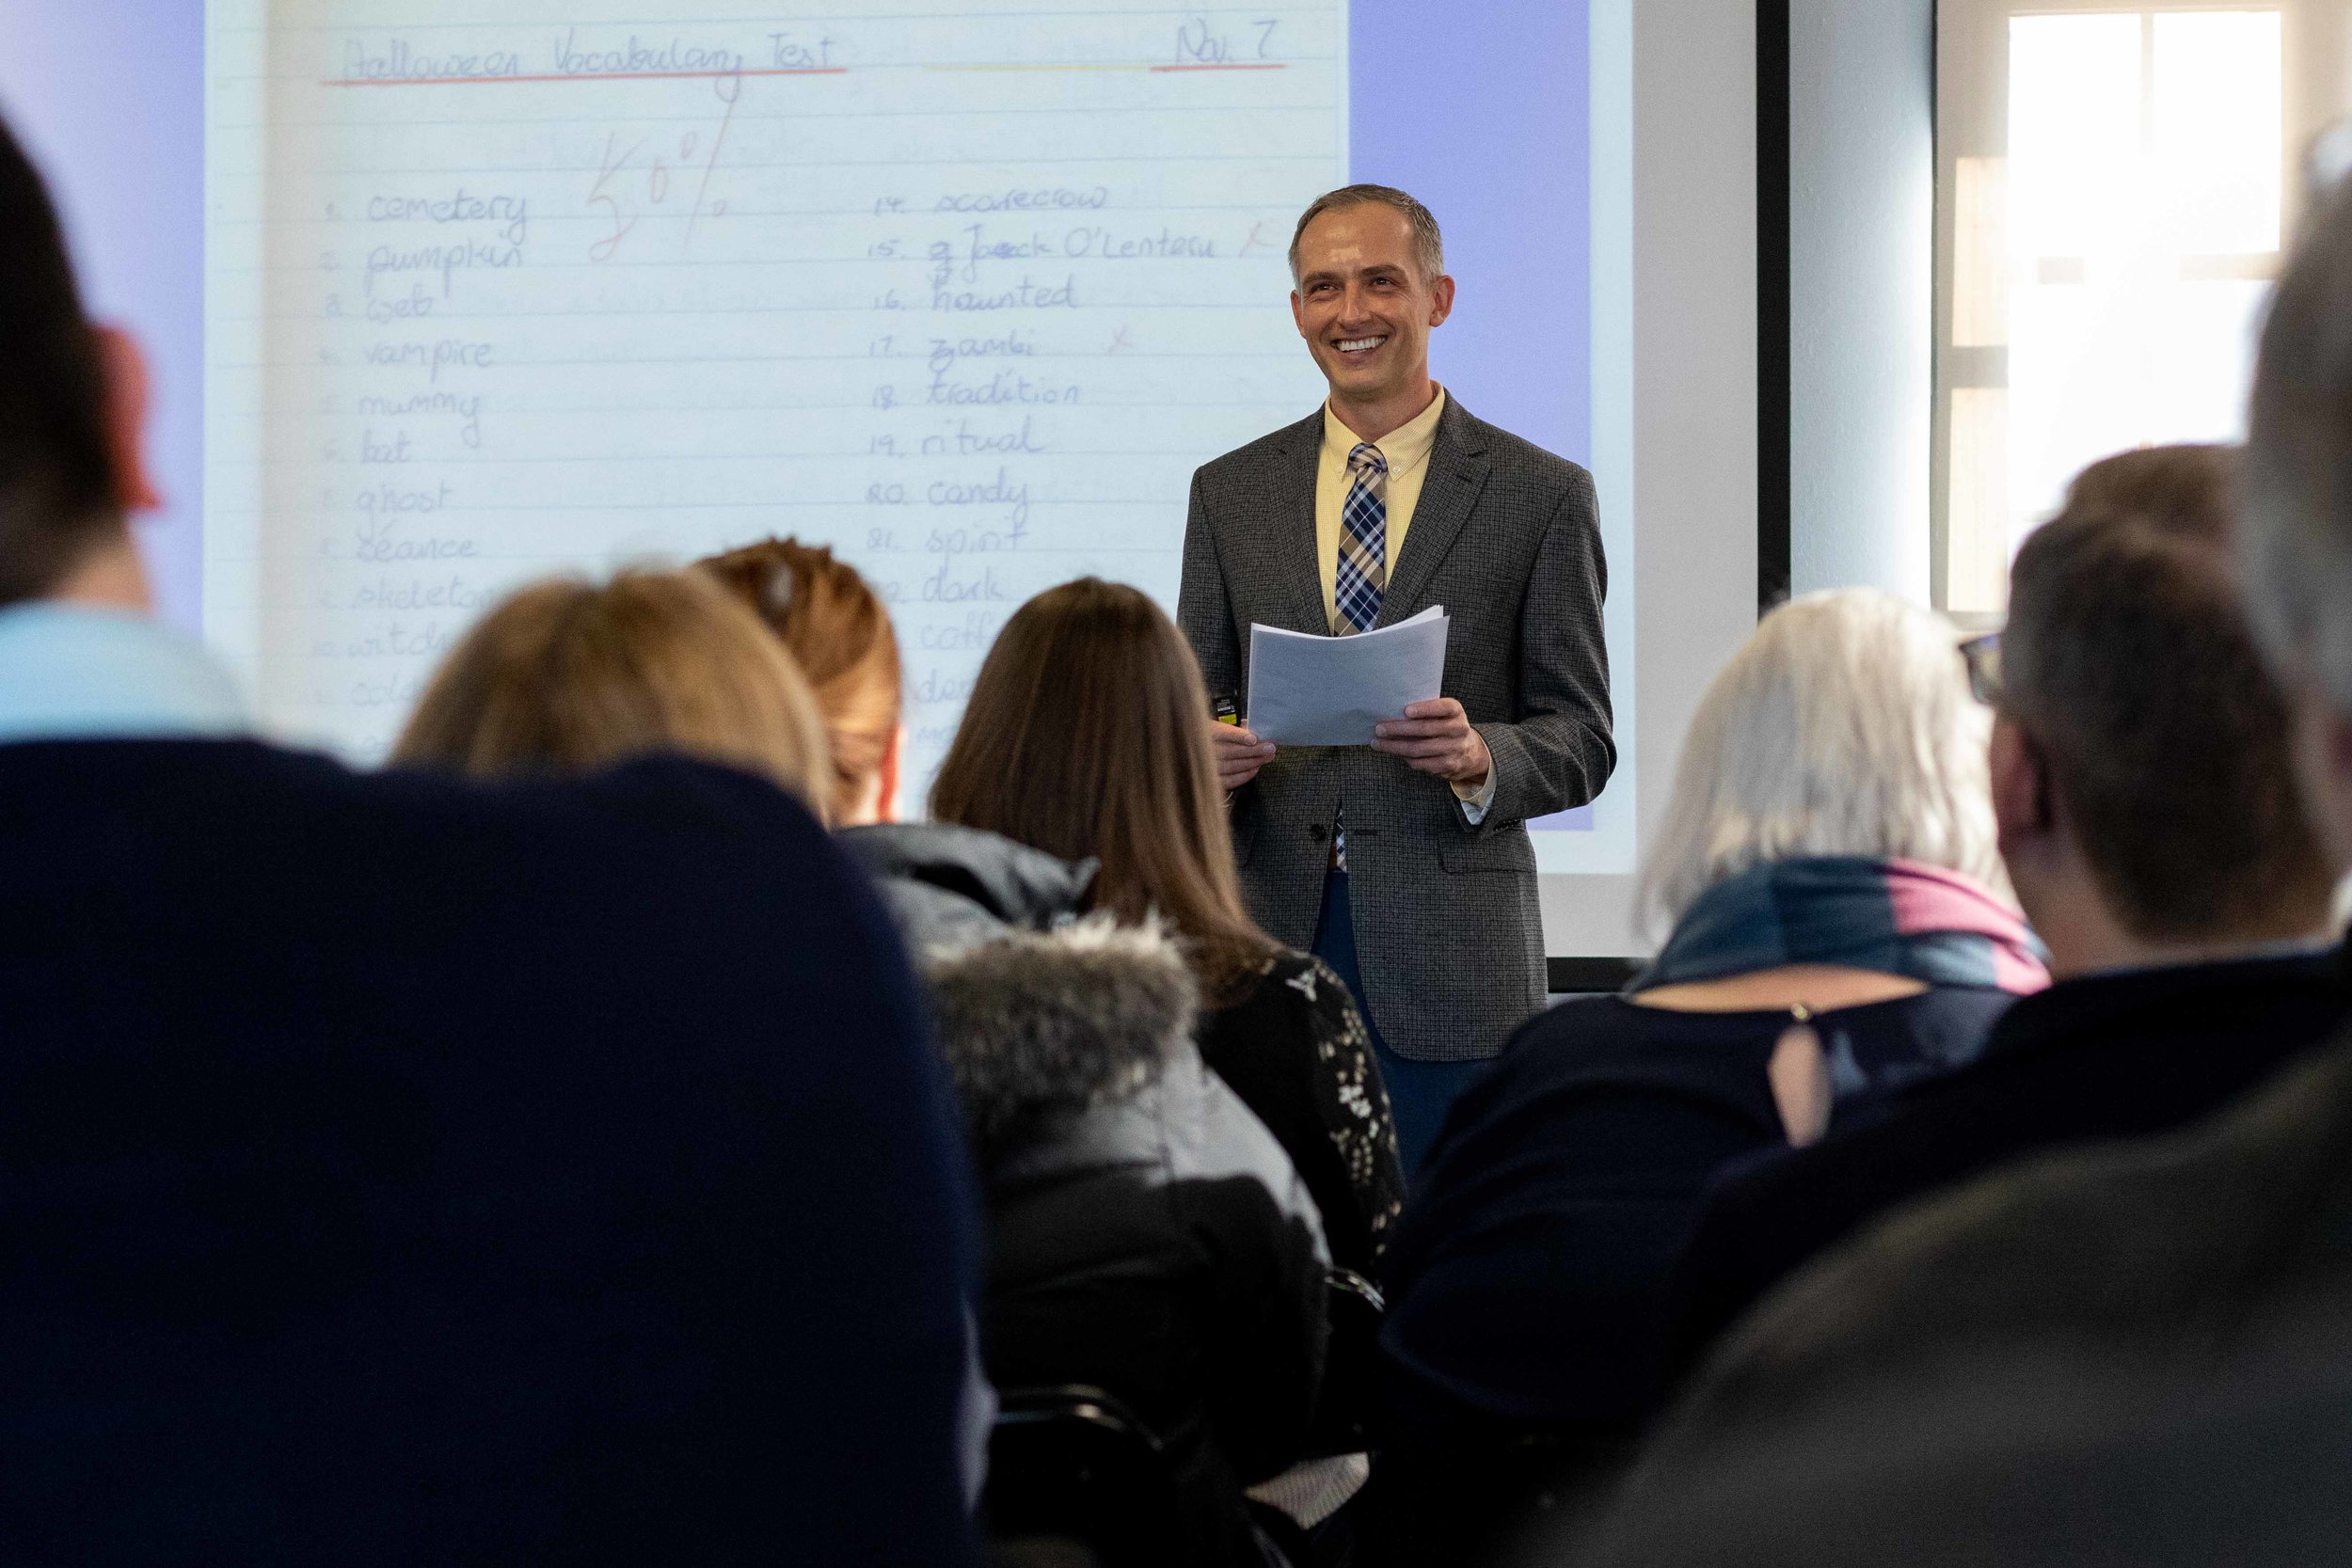 Associate Professor Peter Bobkowski delivered the Budig Teaching lecture in March.